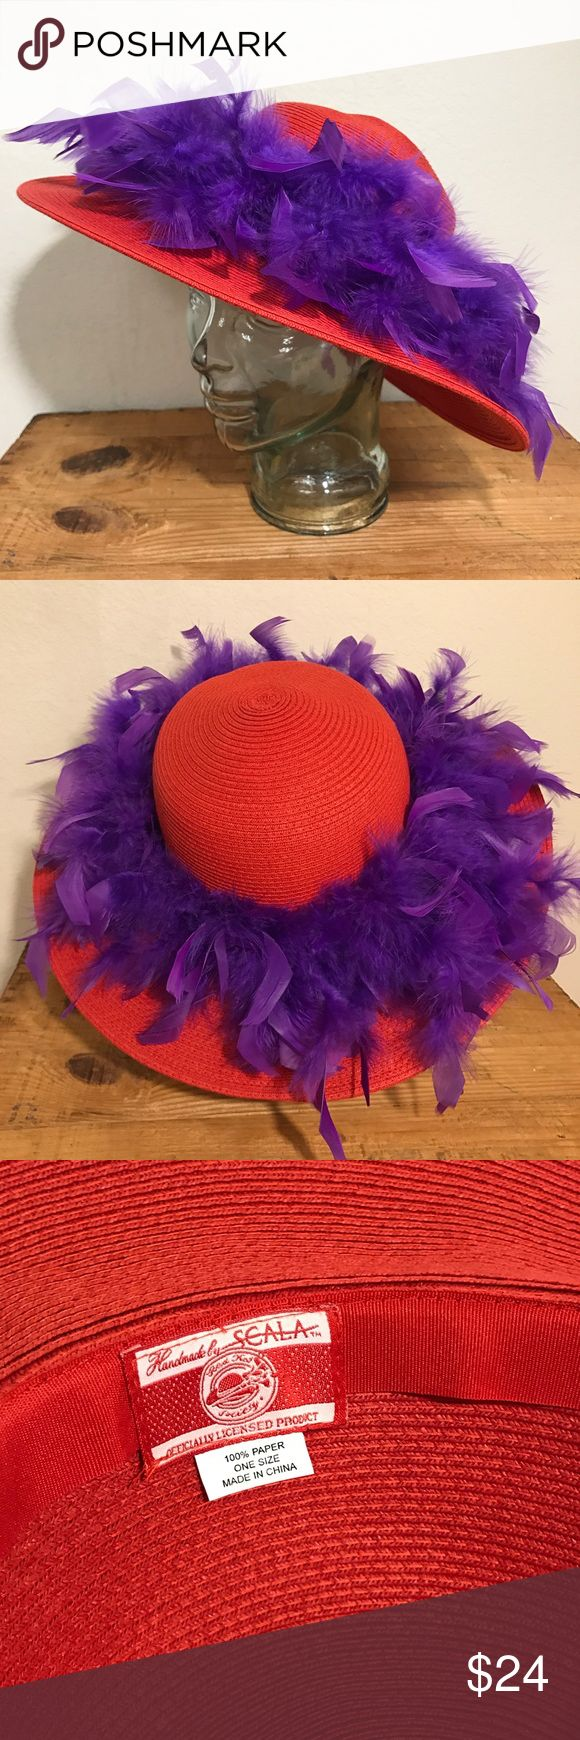 """""""Red Hat Society"""" Hat by SCALA One Size """"Red Hat Society"""" Red Hat Handmade by SCALA One Size With Purple Feathers  One Size fits most  Hat is 100% paper  Trimmed in purple feathers   Please see photos as we do consider them to be a part of the description. Scala Accessories Hats"""